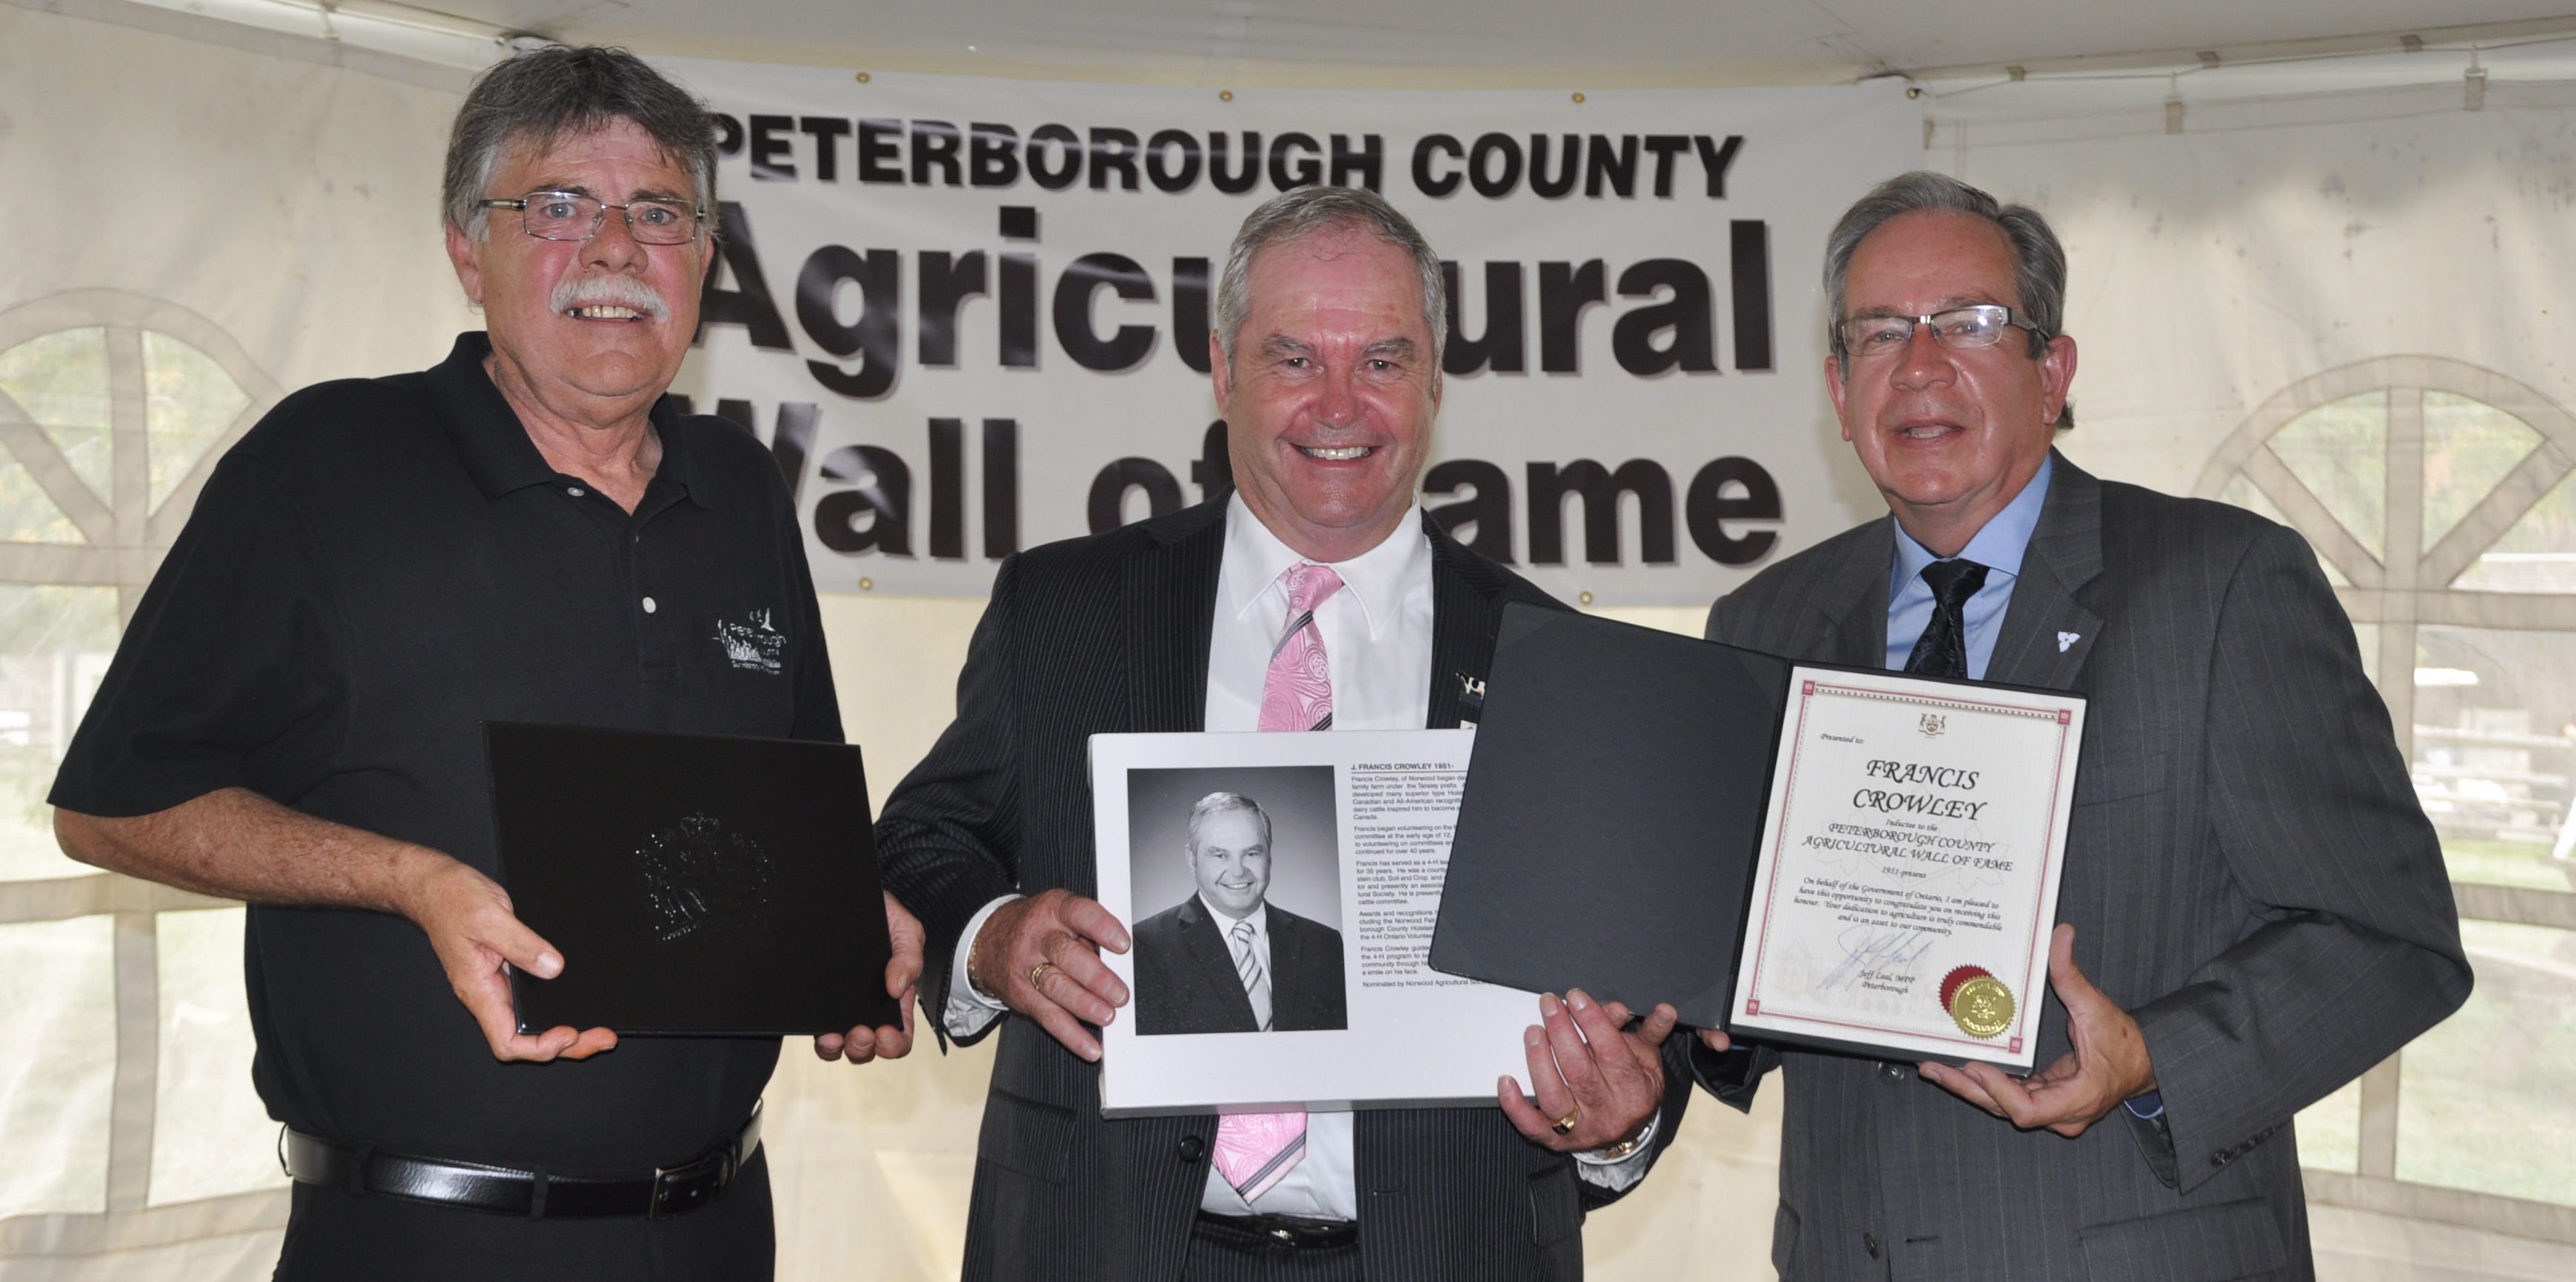 J Murray Jones, Warden, Francis Crowley, Jeff Leal, MPP